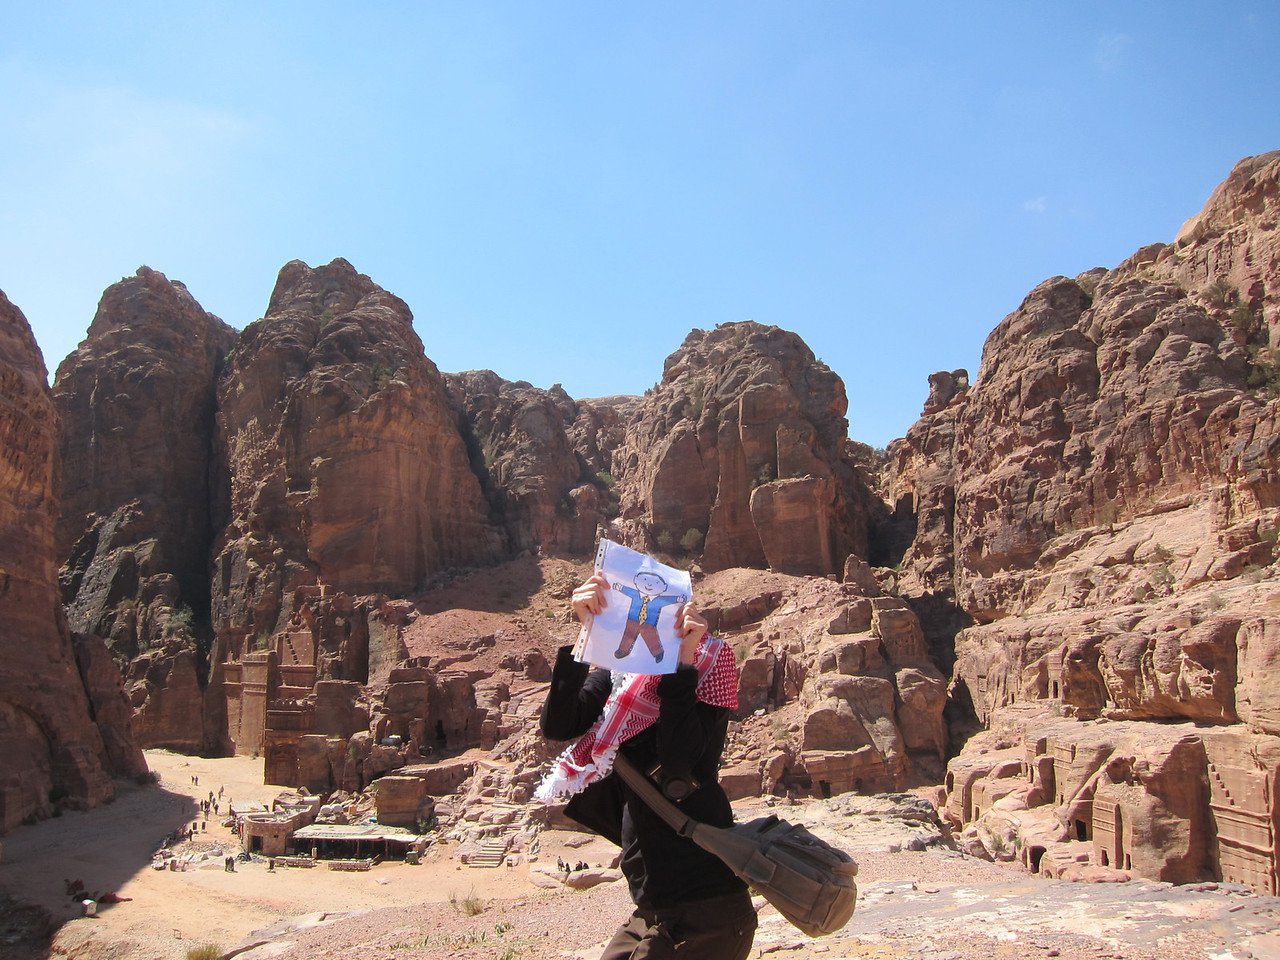 A failed attempt to jump on the Street of Facades with Flat Stanley in Jordan.